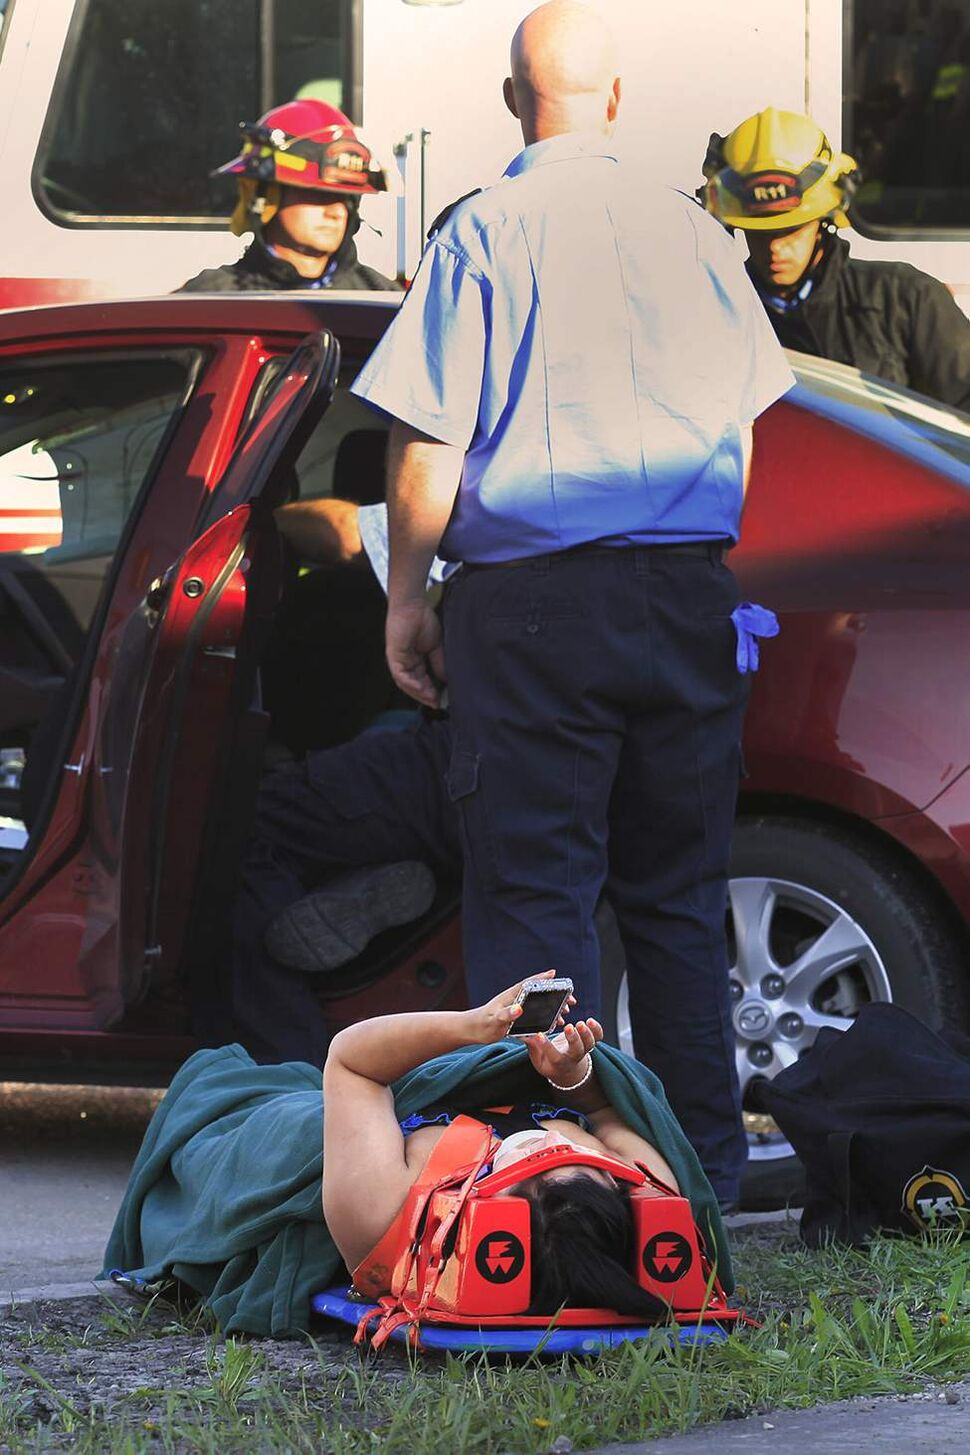 A woman texts as another passenger is extricated from her vehicle after a motor vehicle collision on Berry at Ness. May 26, 2011 (JOHN WOODS)